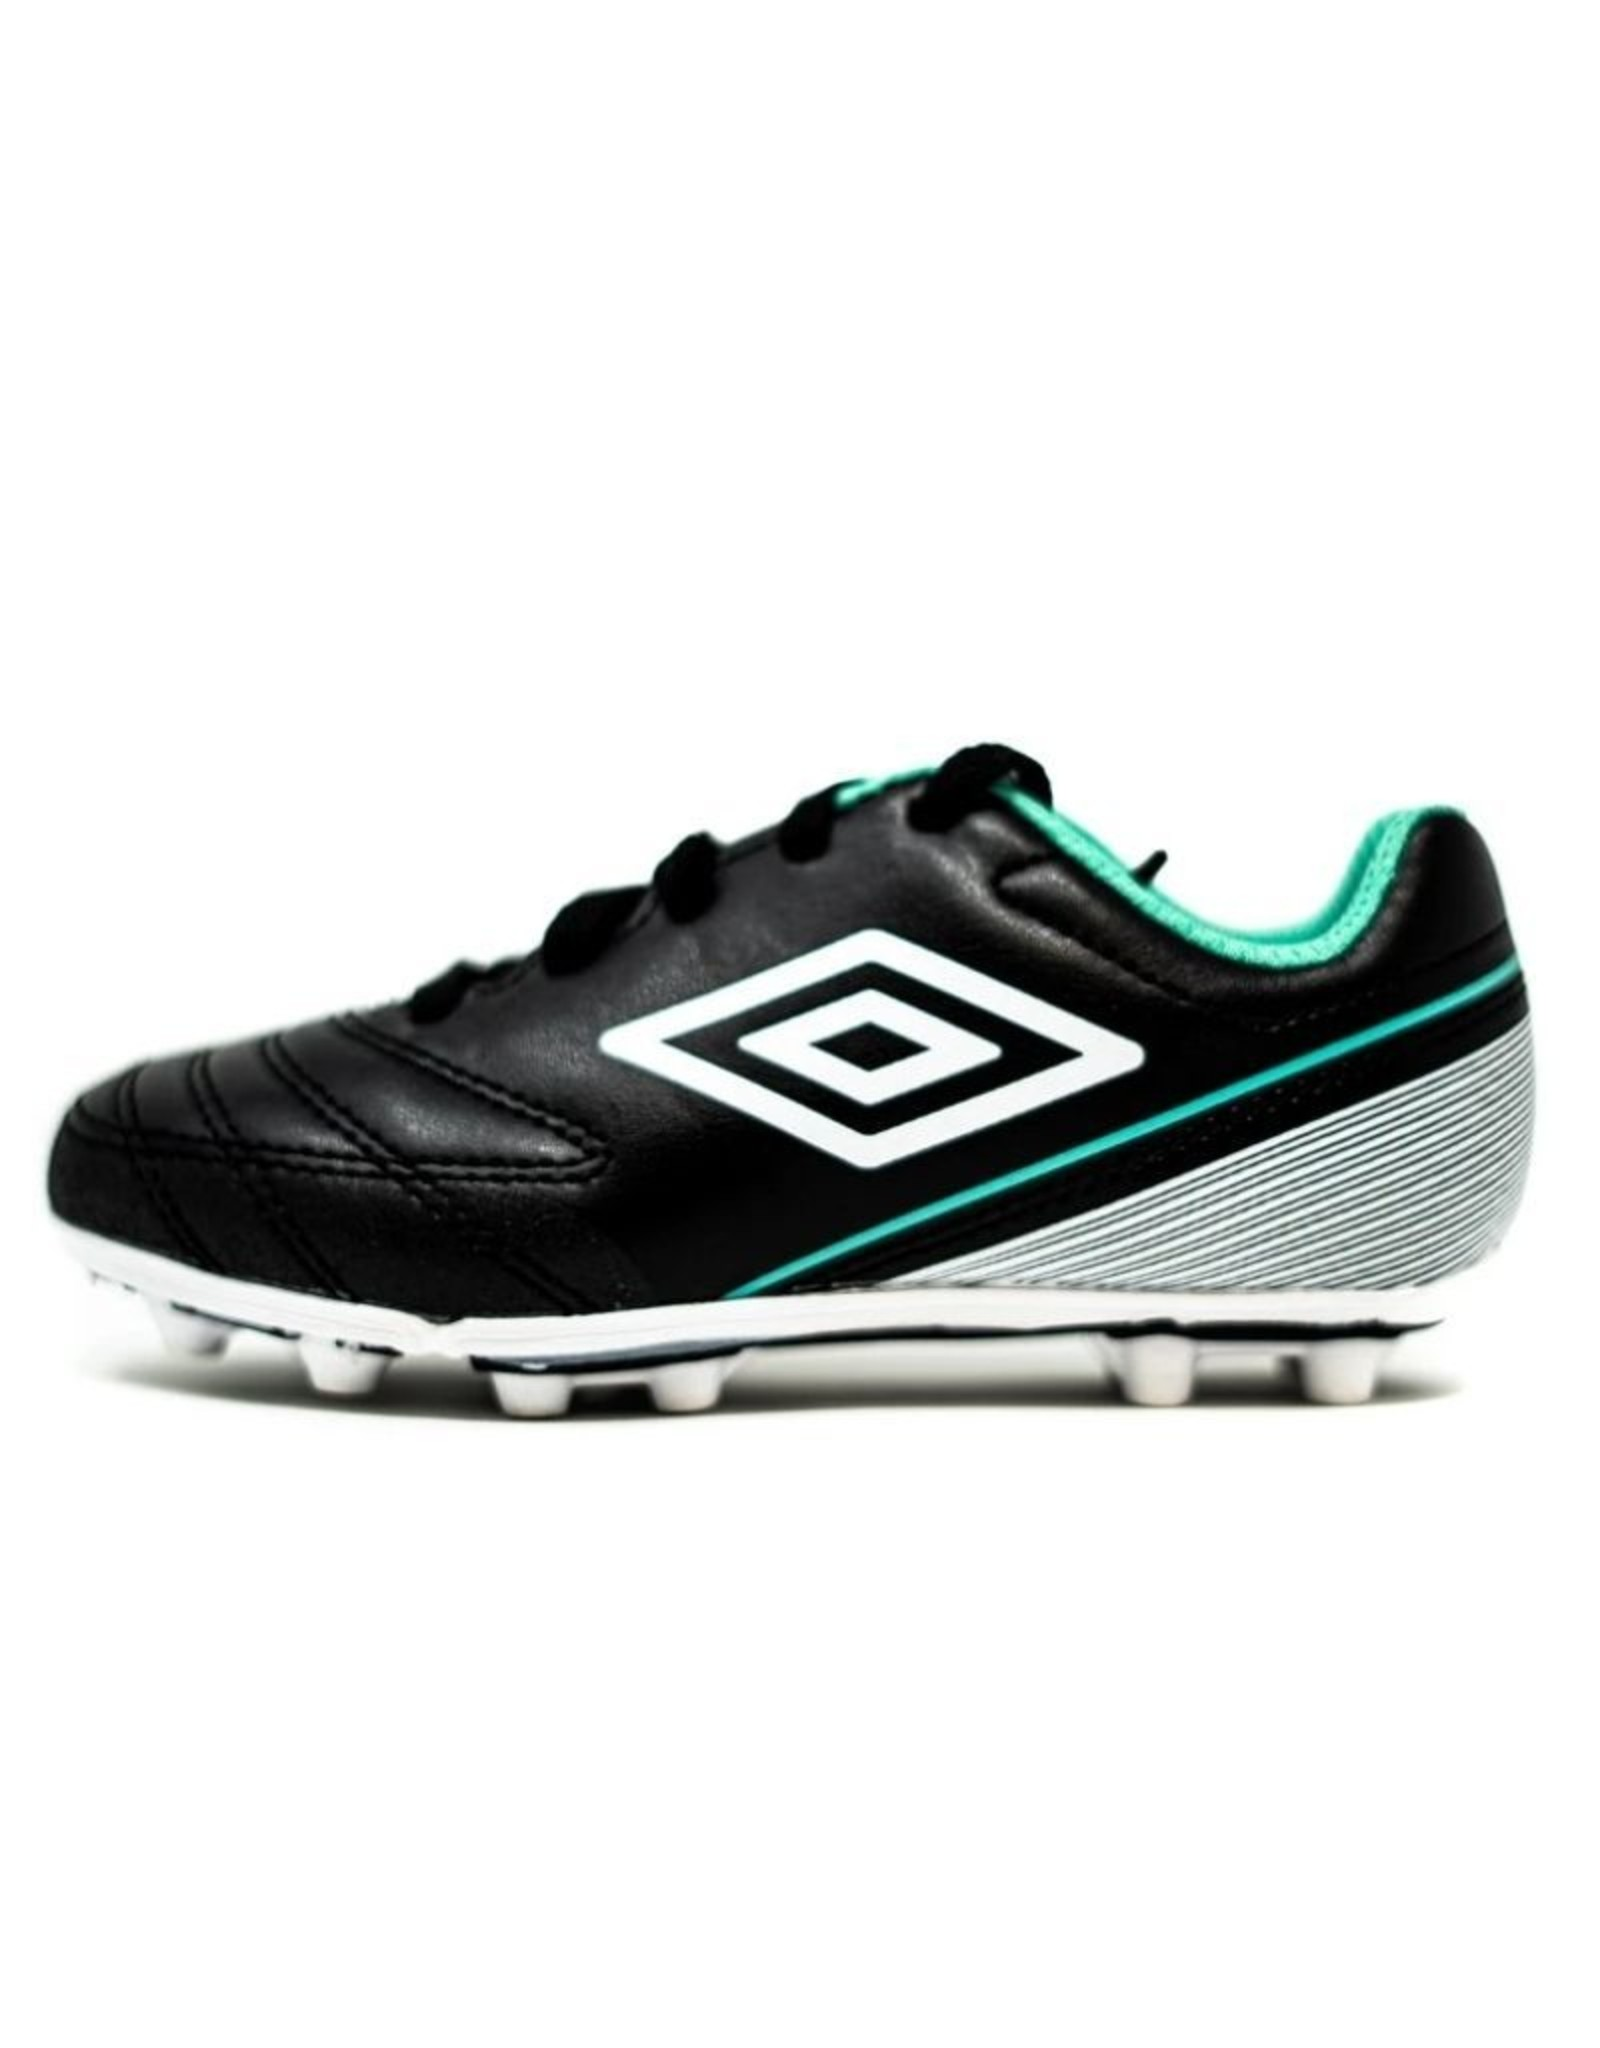 Umbro Jr Classico VII HGR Soccer Cleat Black/Green